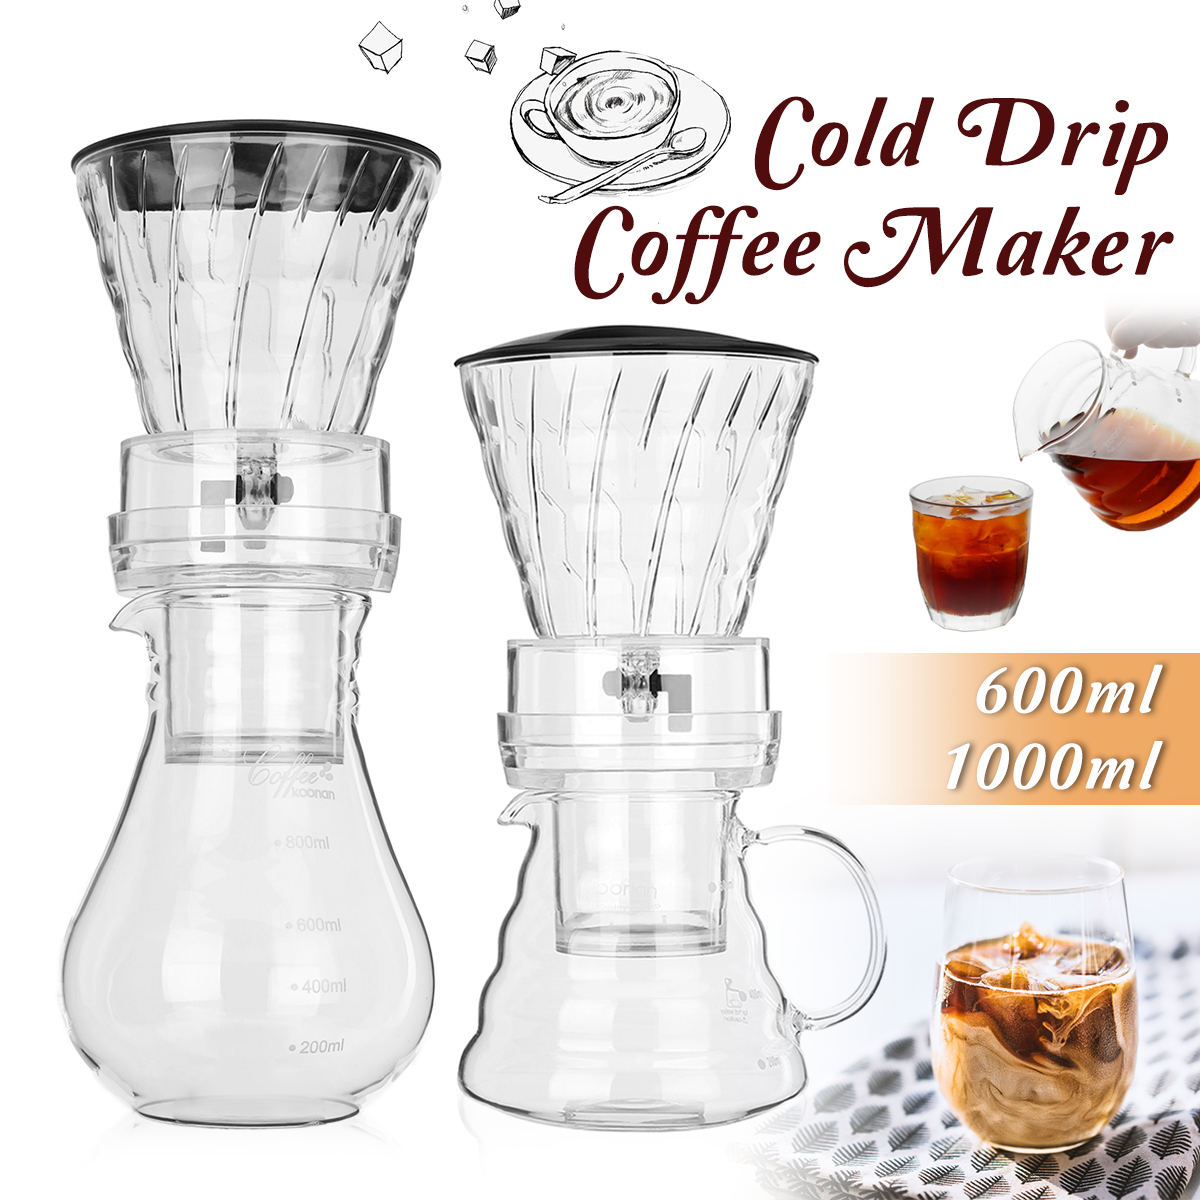 600ml/1000ml Water Drip Coffee Machine Reusable Filter Tools Glass Espresso Coffee Dripper Pot Ice Brew Cold Drip Coffee Maker portable coffee maker glass espresso drip coffee pot reusable filter tools ice cold brew percolators coffee machine